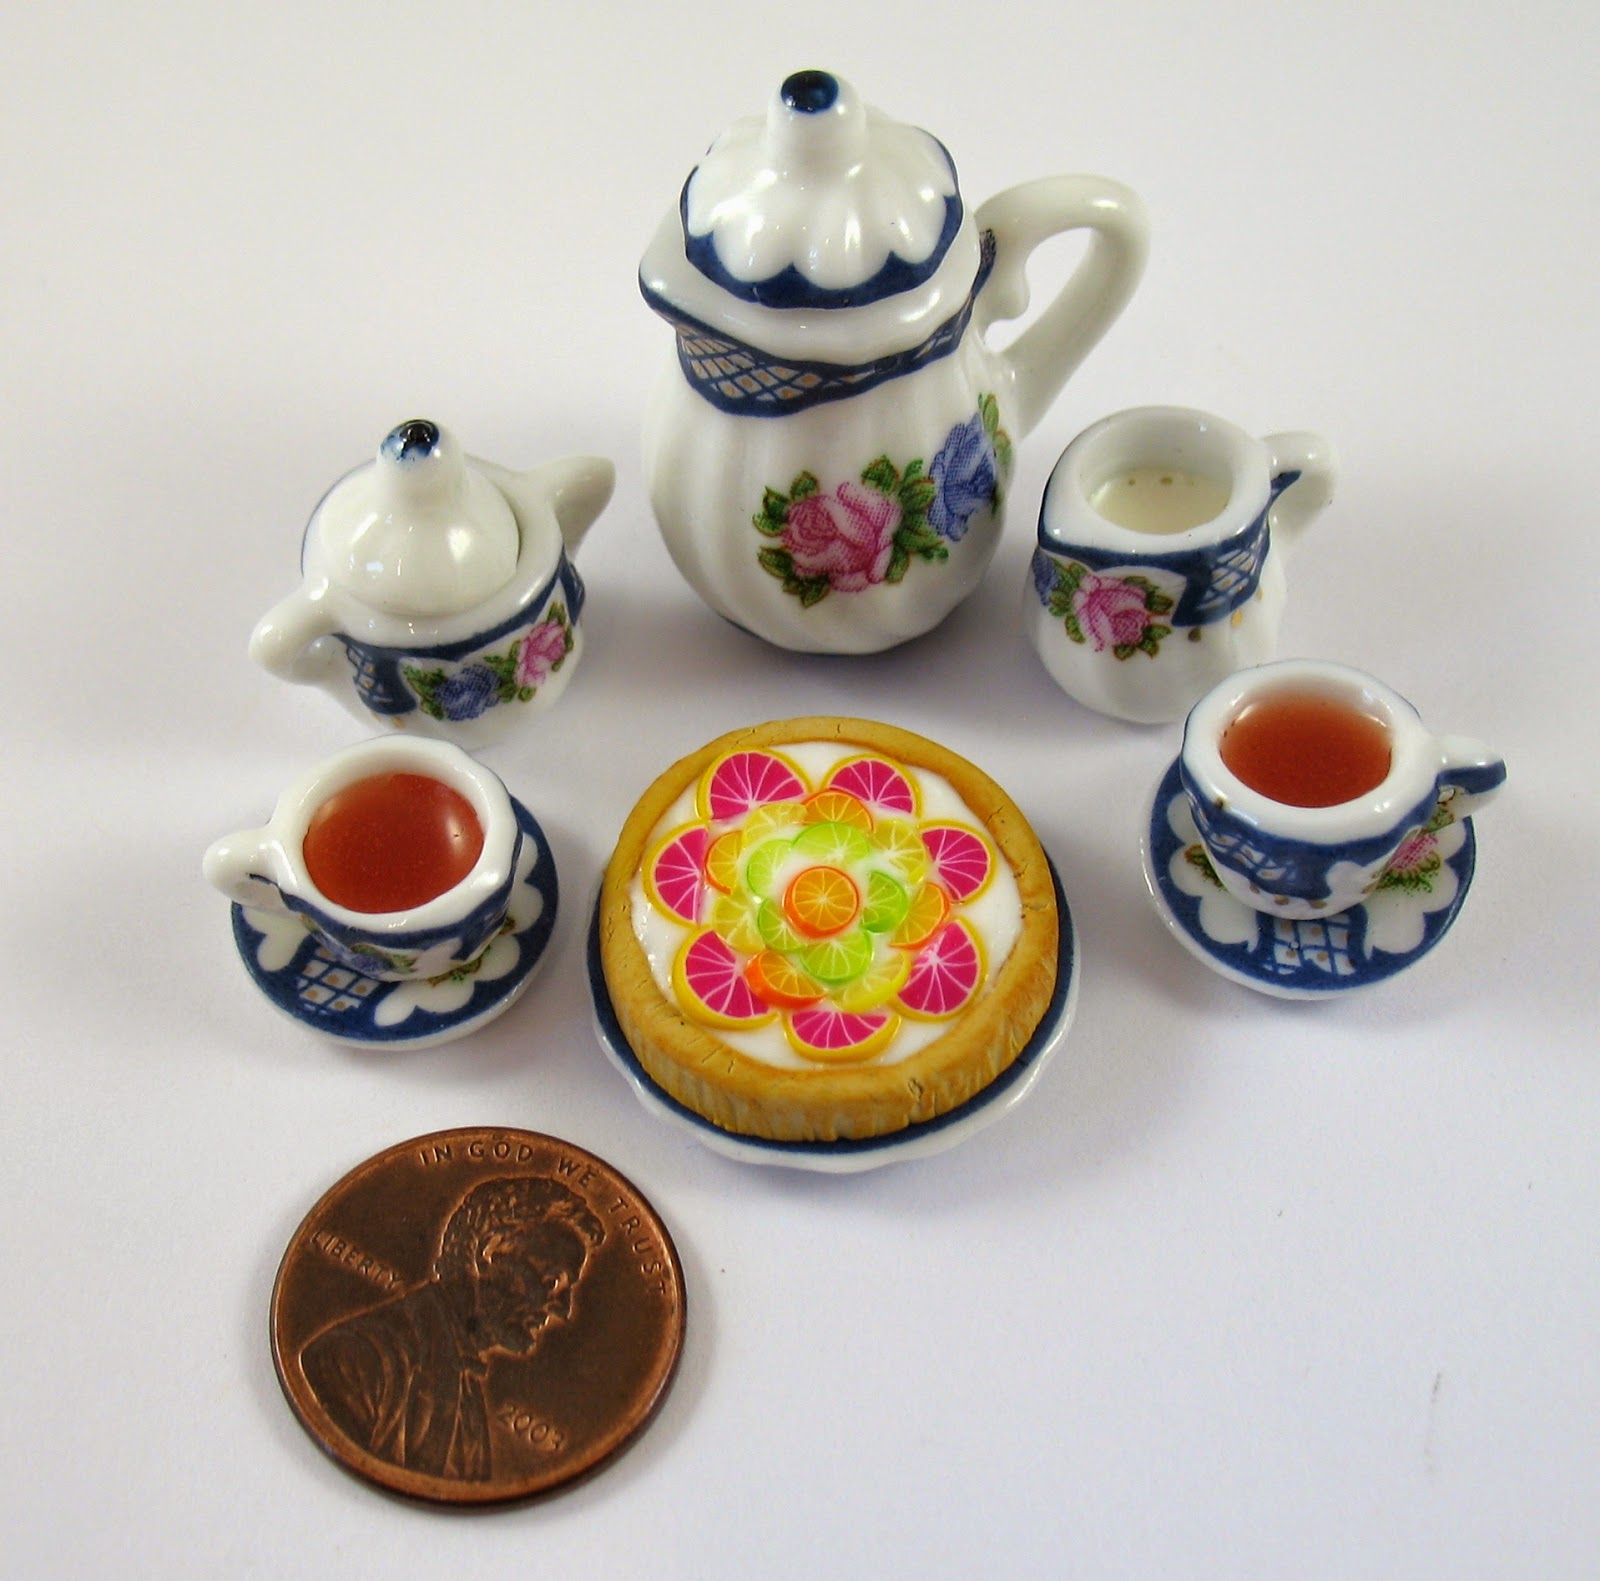 https://www.etsy.com/listing/82904868/dollhouse-miniature-food-tea-and?ref=listing-shop-header-1